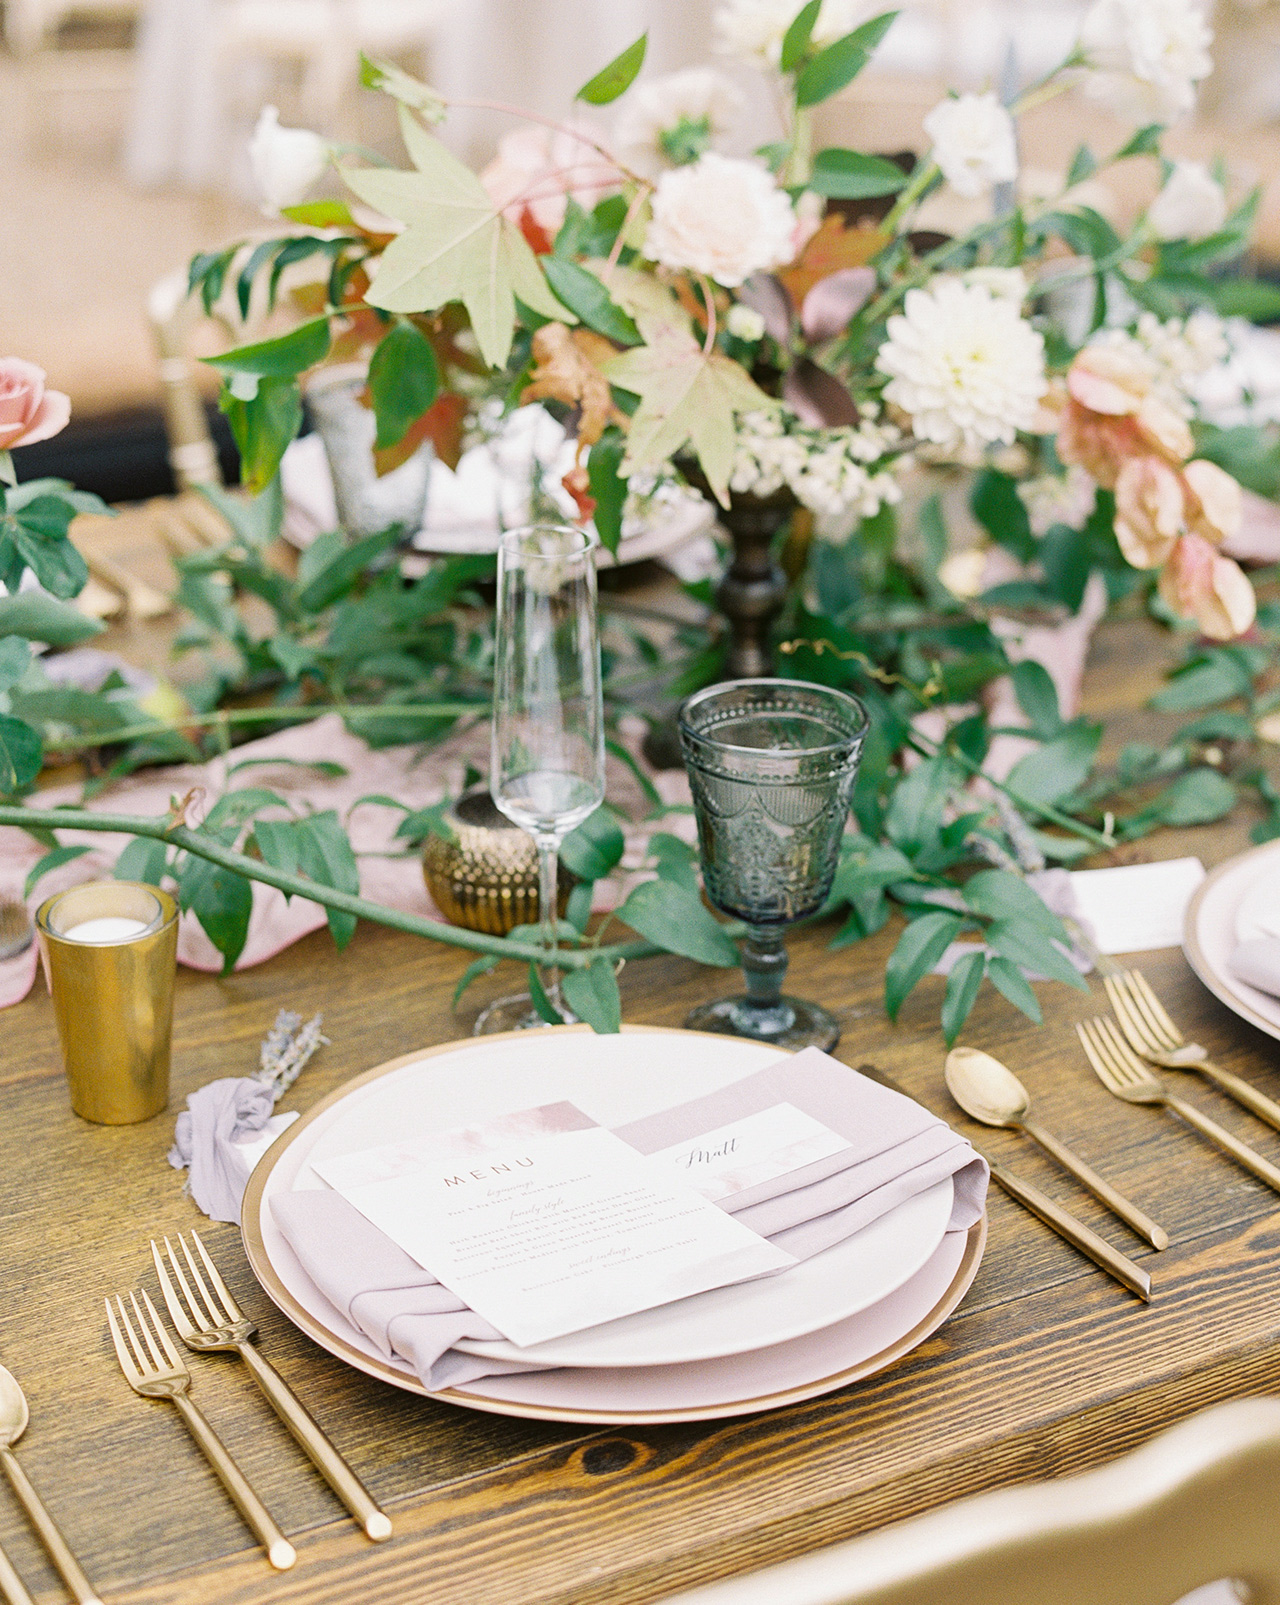 Ivory plates gold flatware blush glassware wooden tables